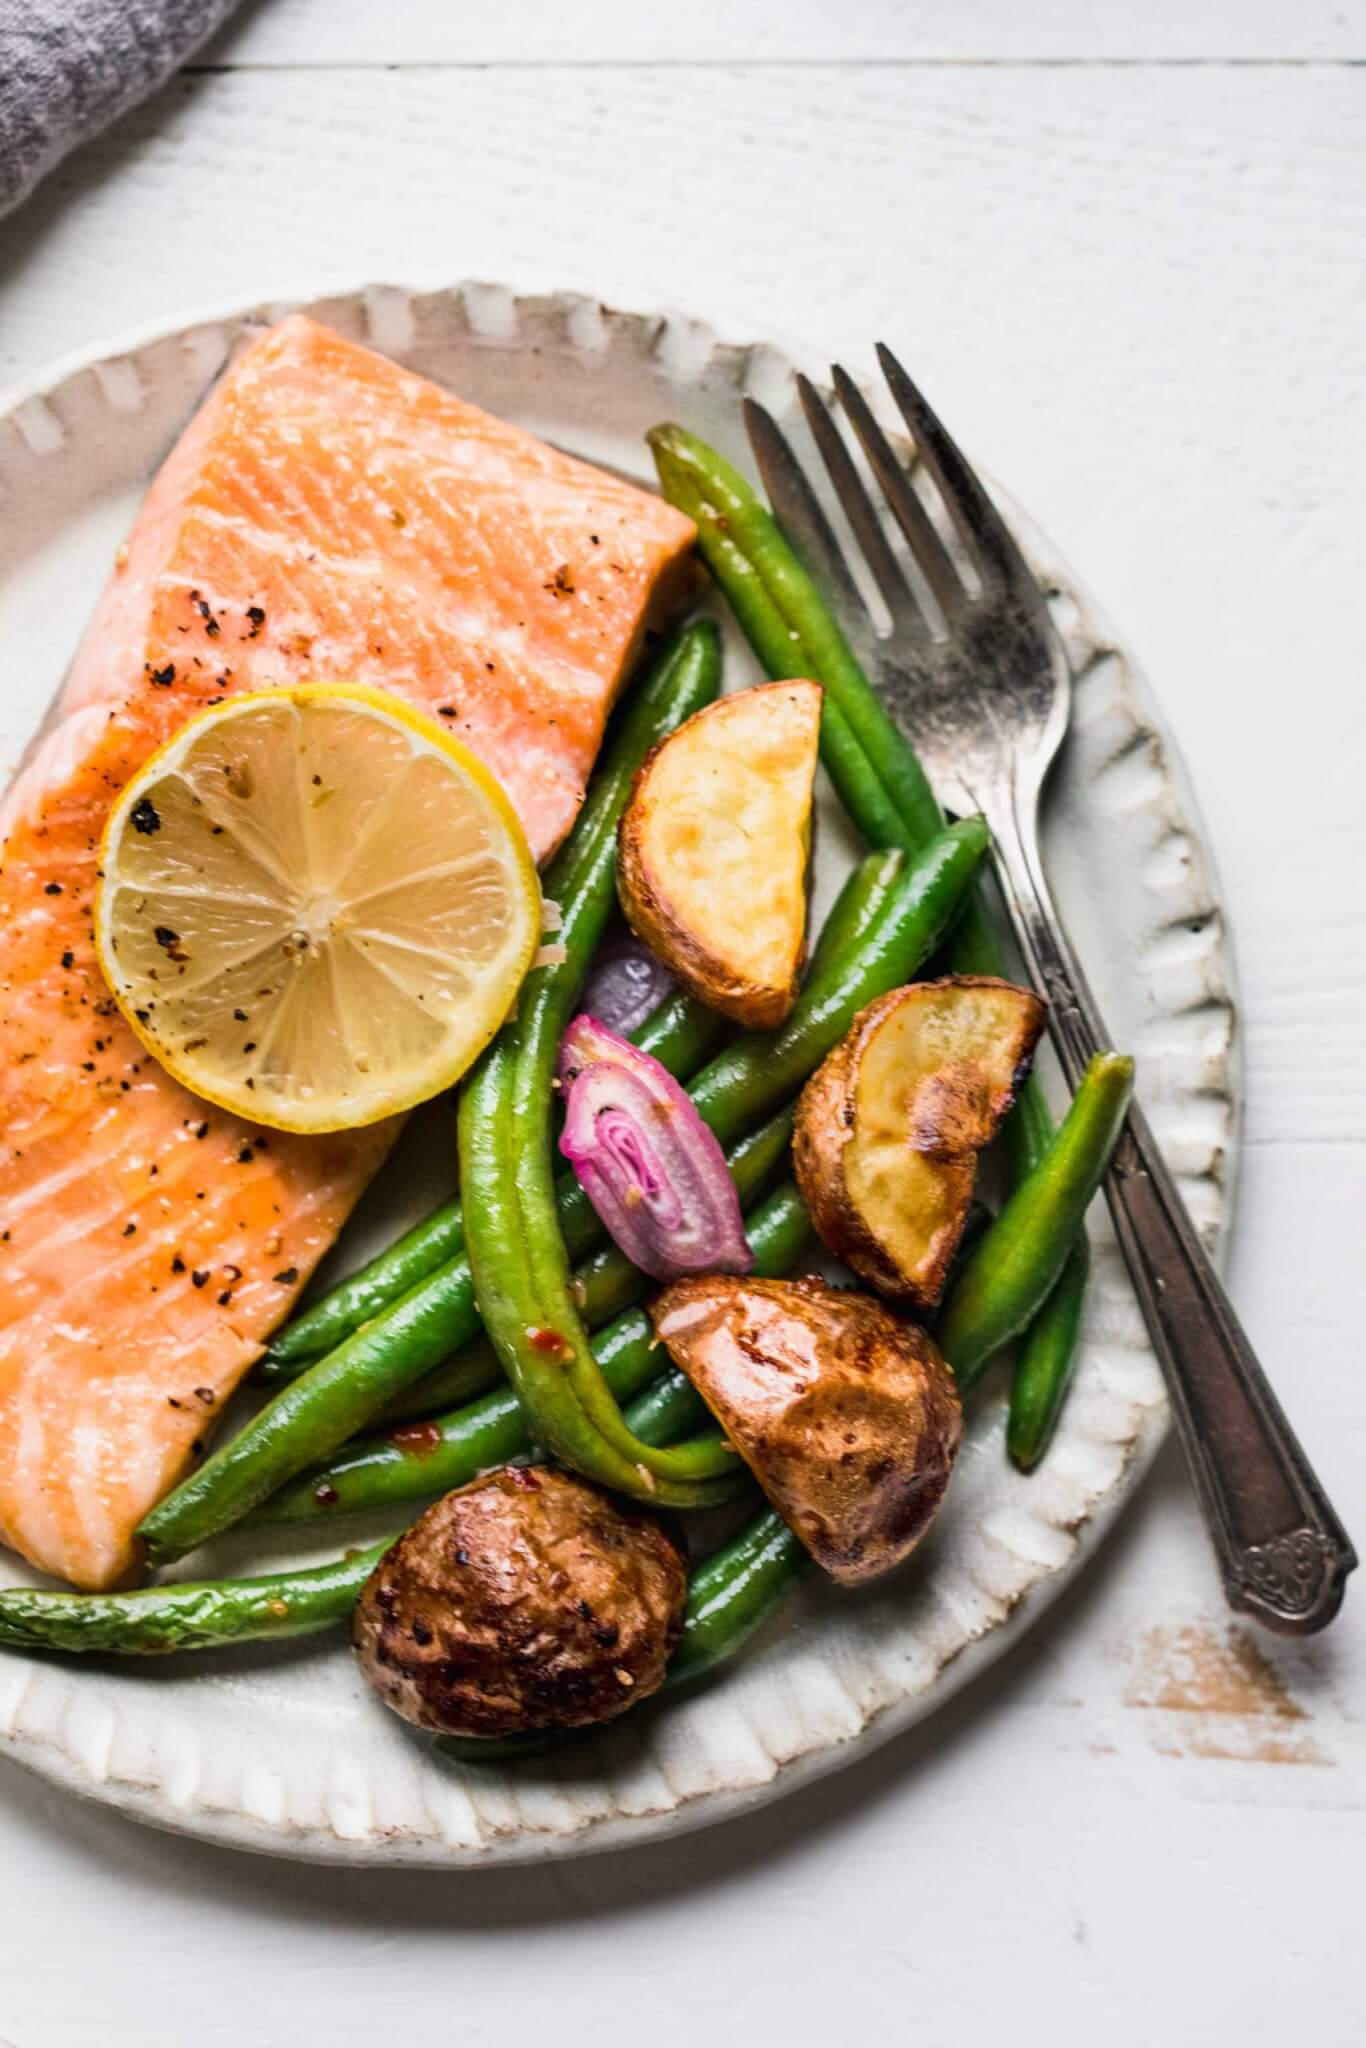 Salmon on plate with lemon slice, green beans and potatoes.